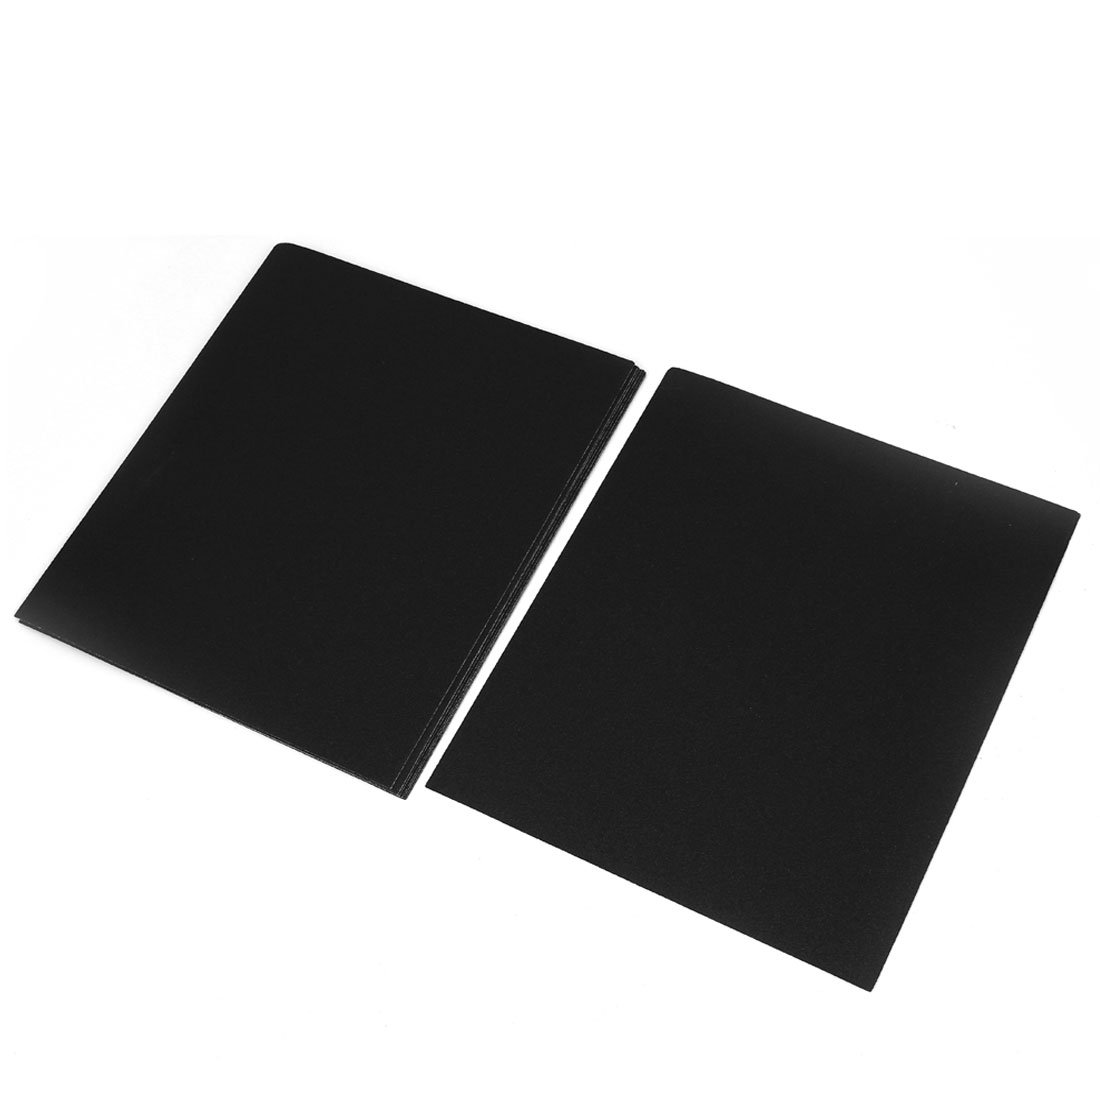 uxcell 28x23cm Silicone Carbide Abrasive Polishing Sandpapers 400 Grit 10pcs SYNCTEA047397